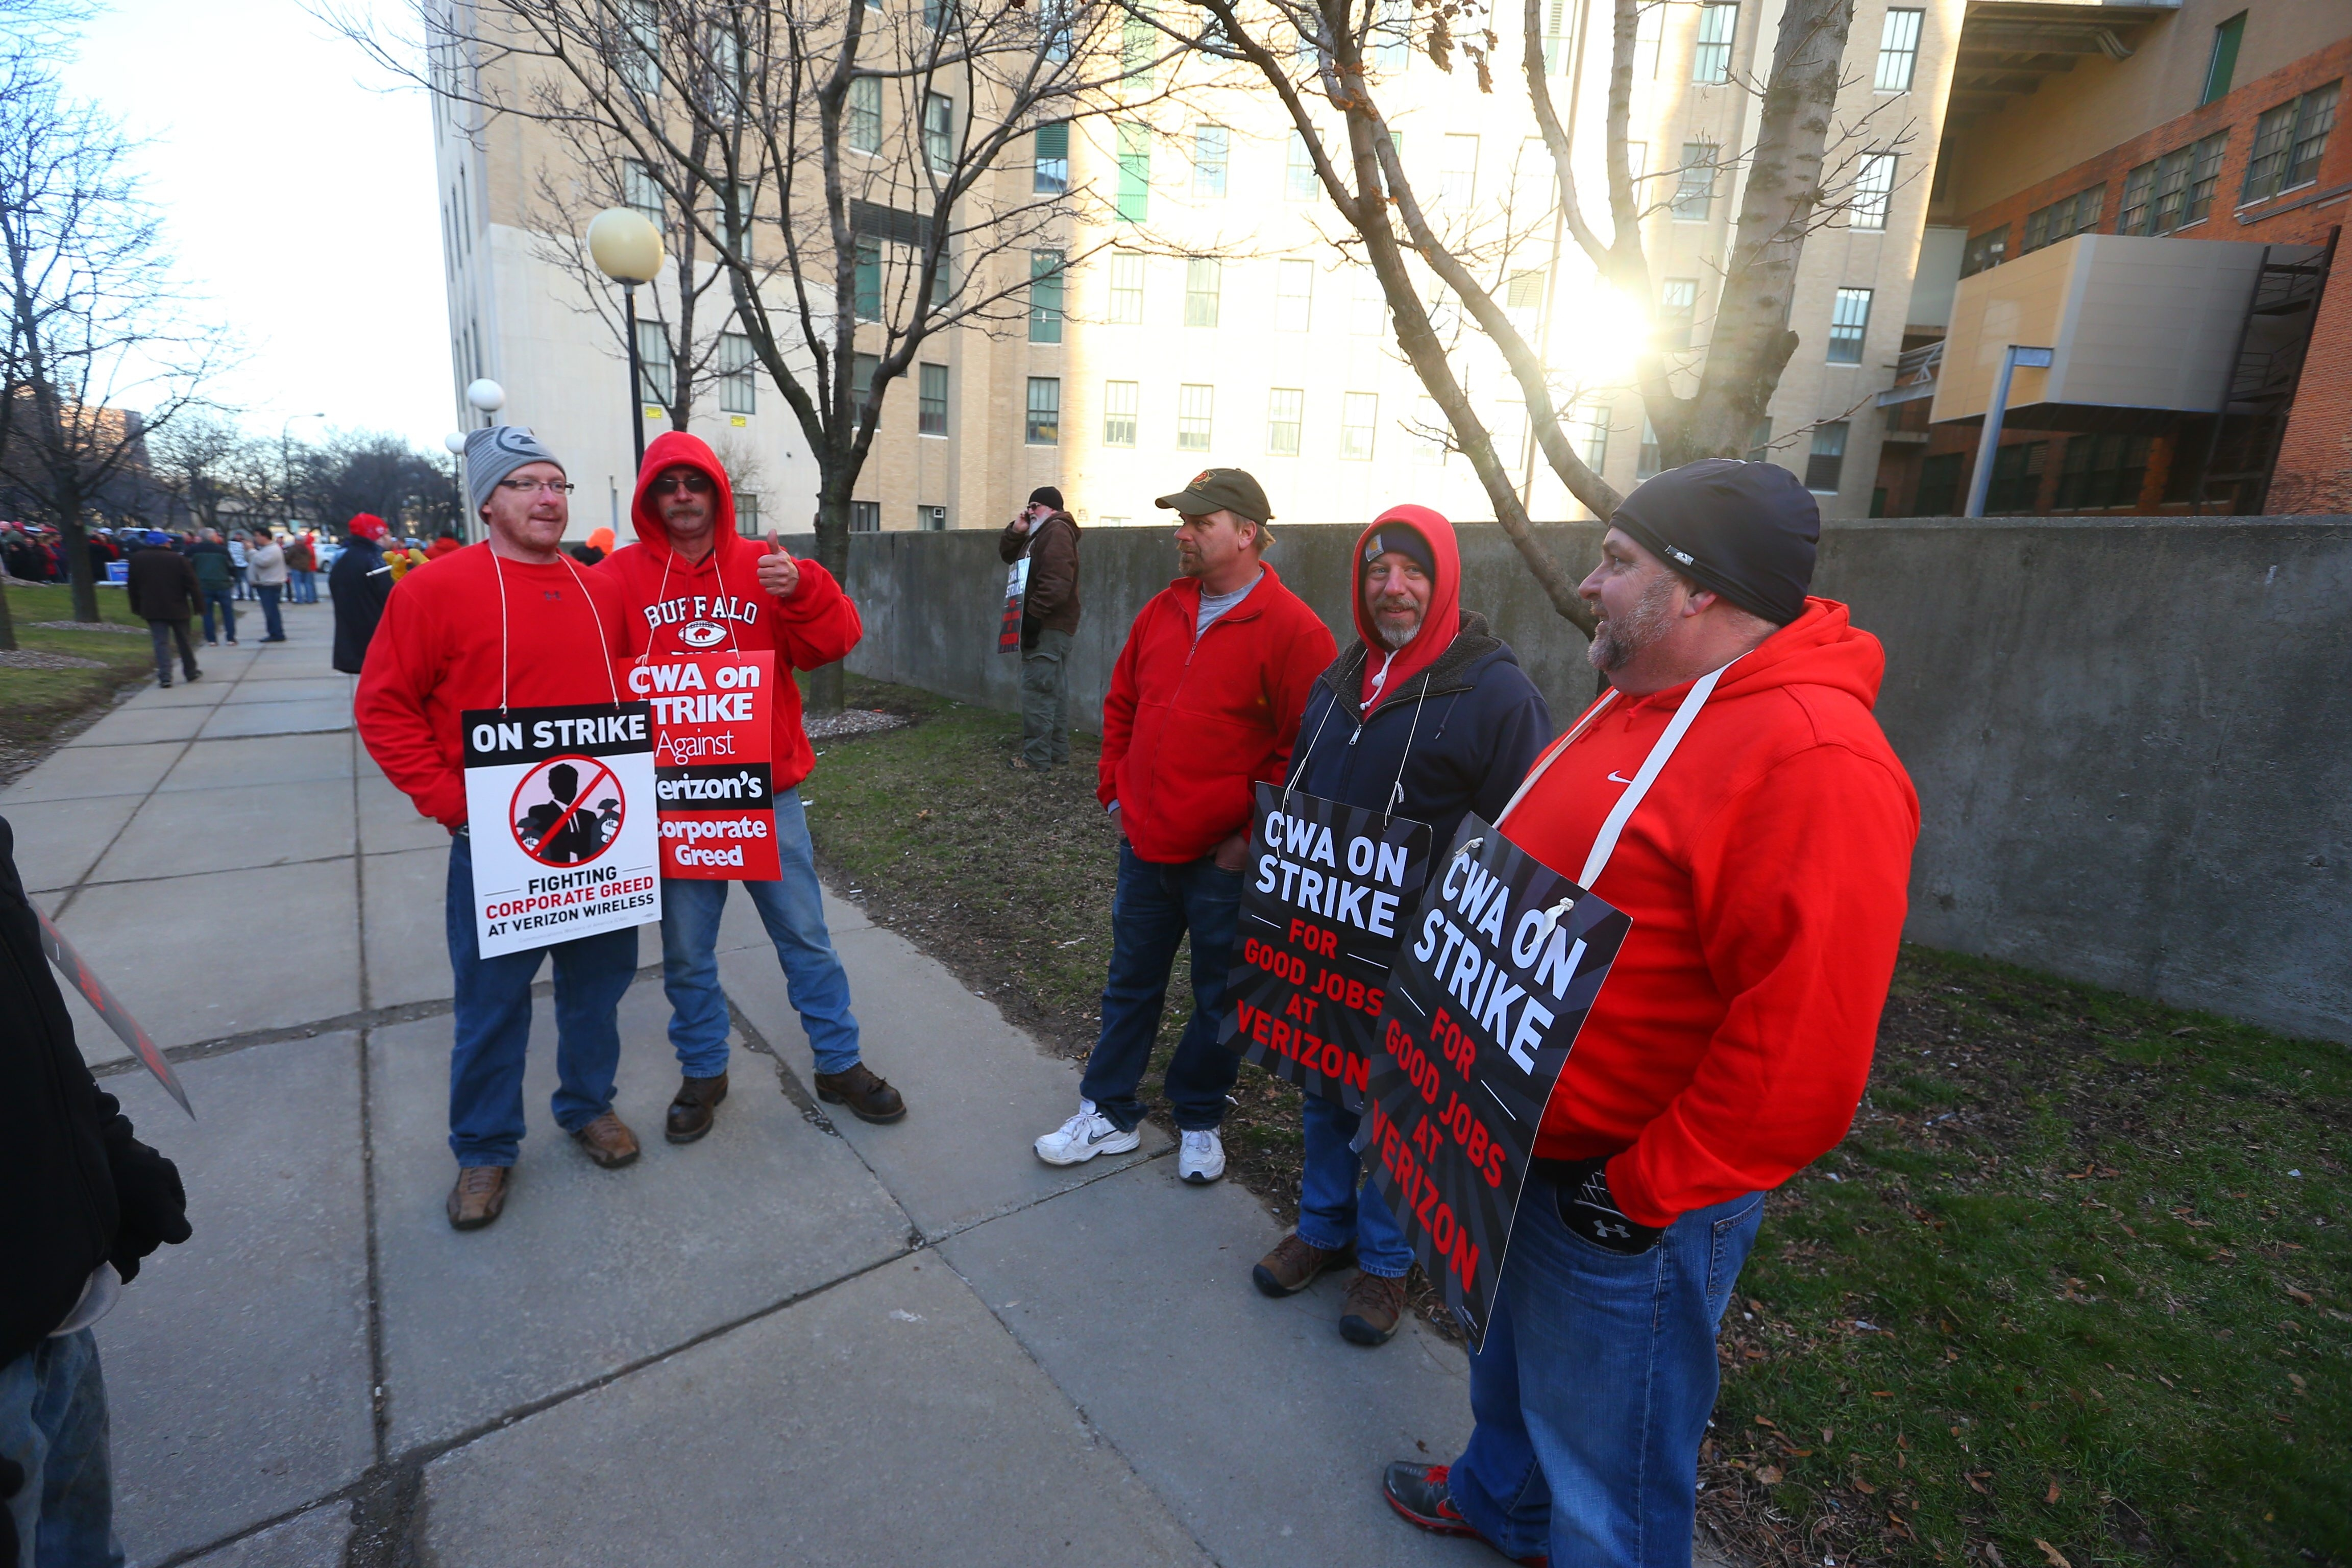 Verizon workers picket outside the company's central office in Buffalo on Wednesday, the first day of the strike that has idled about 40,000 workers across the company. It is the largest strike in the nation in five years, but still much smaller than earlier walkouts.